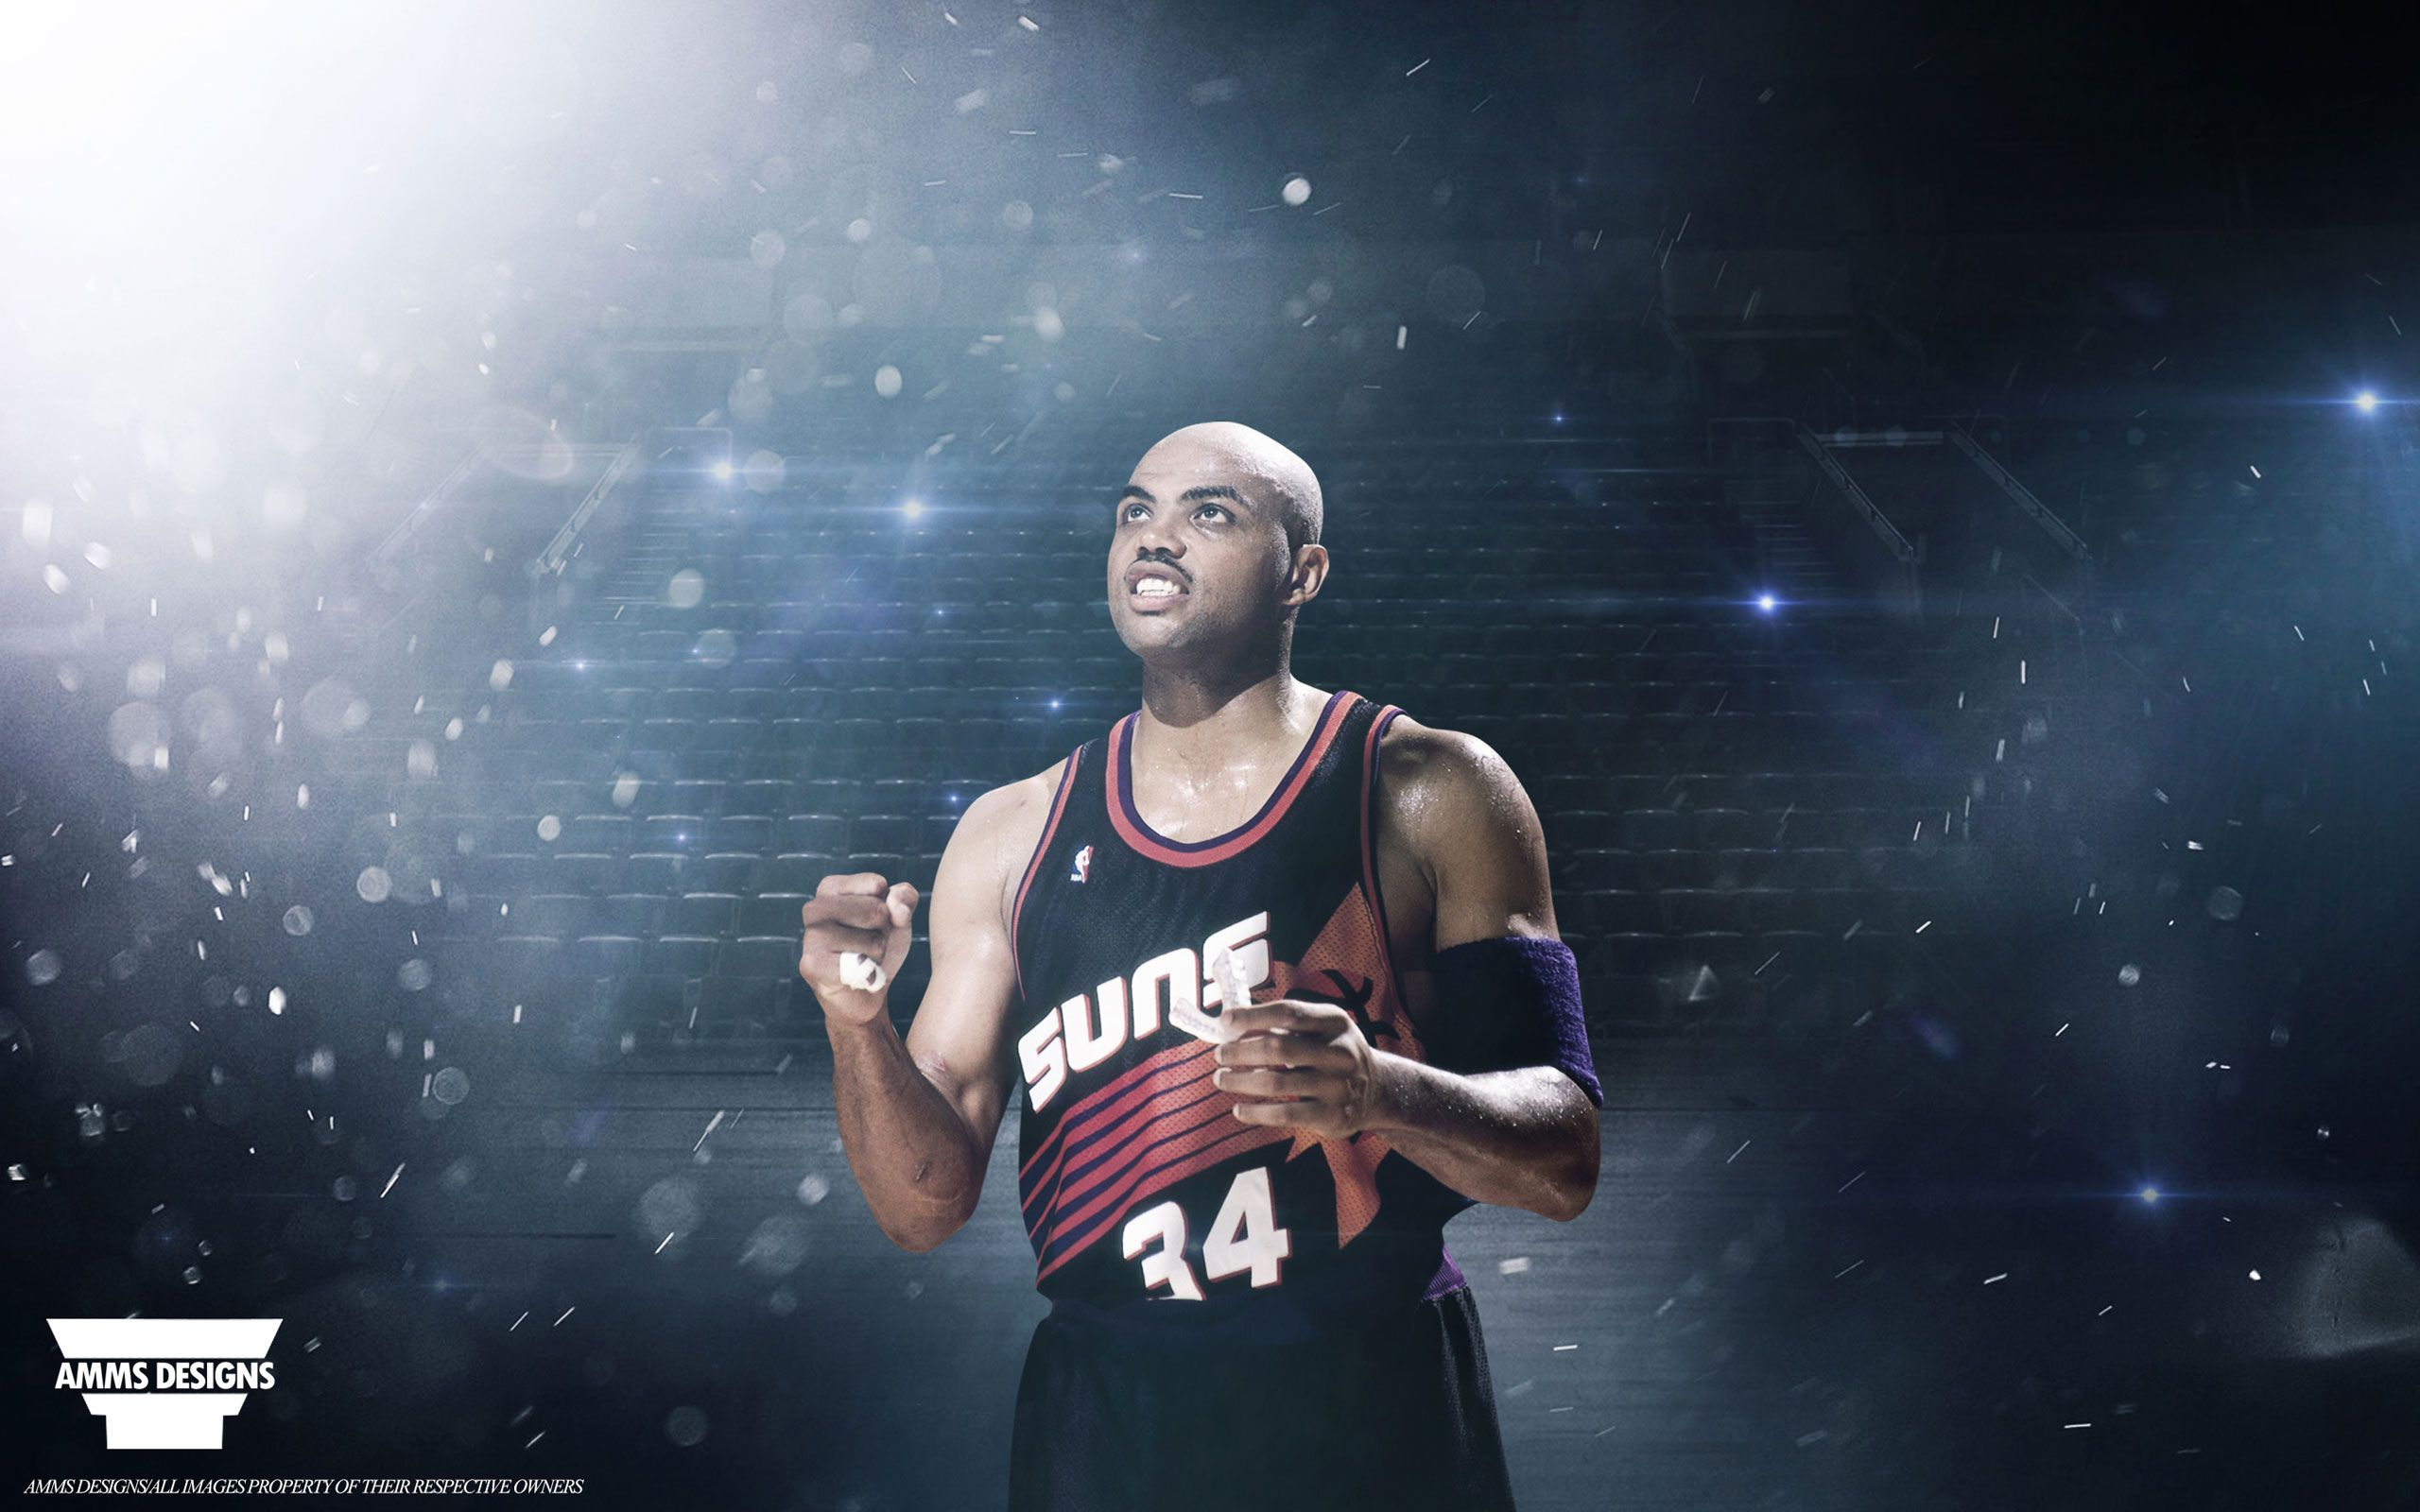 Charles Barkley Wallpapers Basketball Wallpapers at Best Games 2560x1600